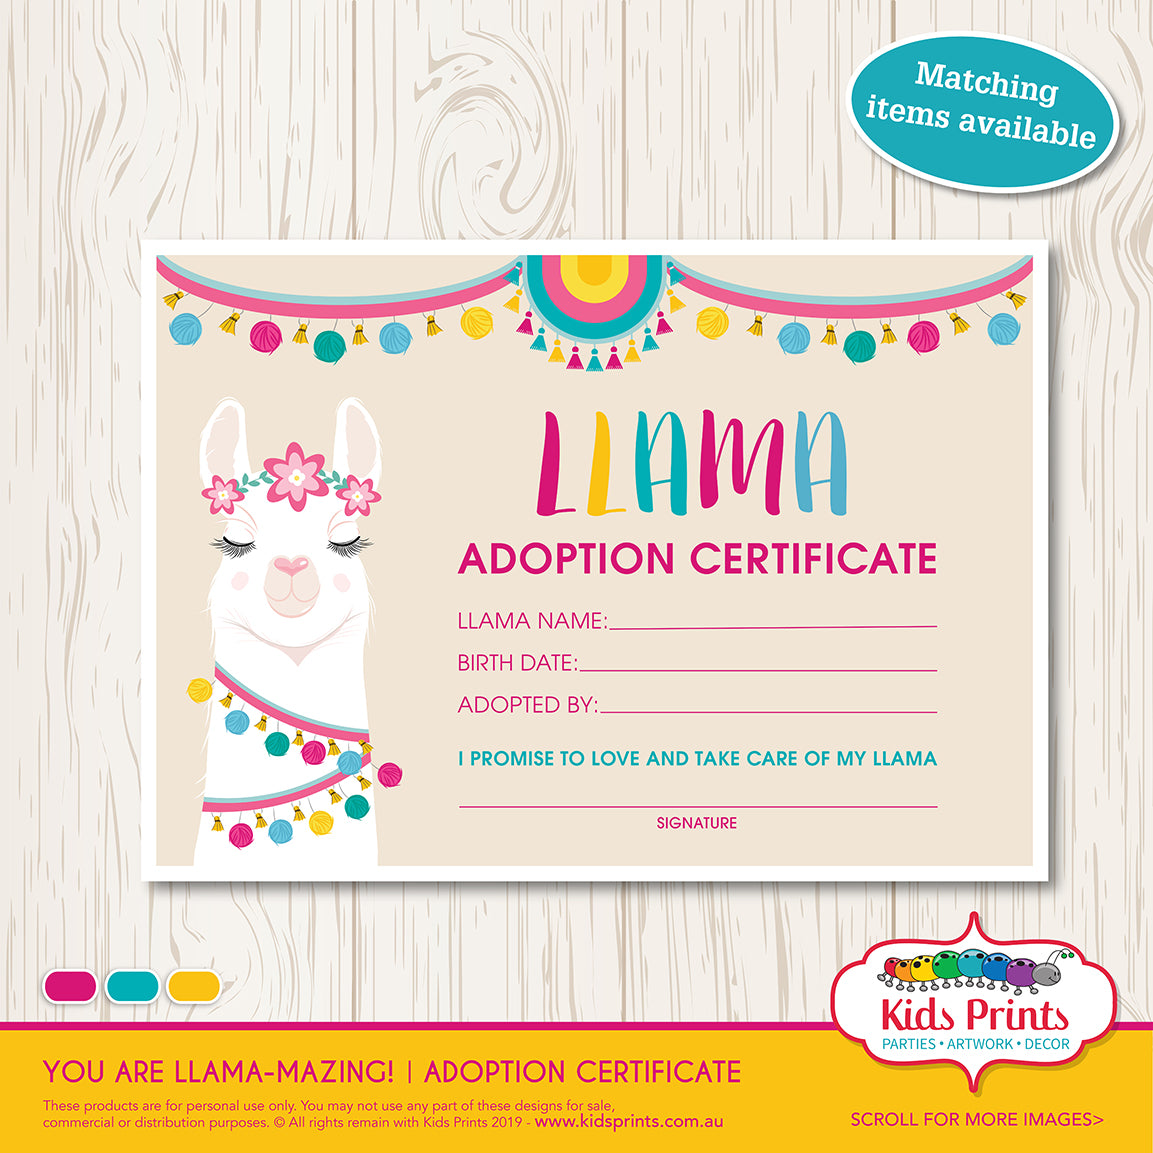 Llama Party - A4 Adoption Certificate - Kids Prints Online - kids wall art printable - nursery art printable - printable invitations - digital invitations - kids wall art - kids prints